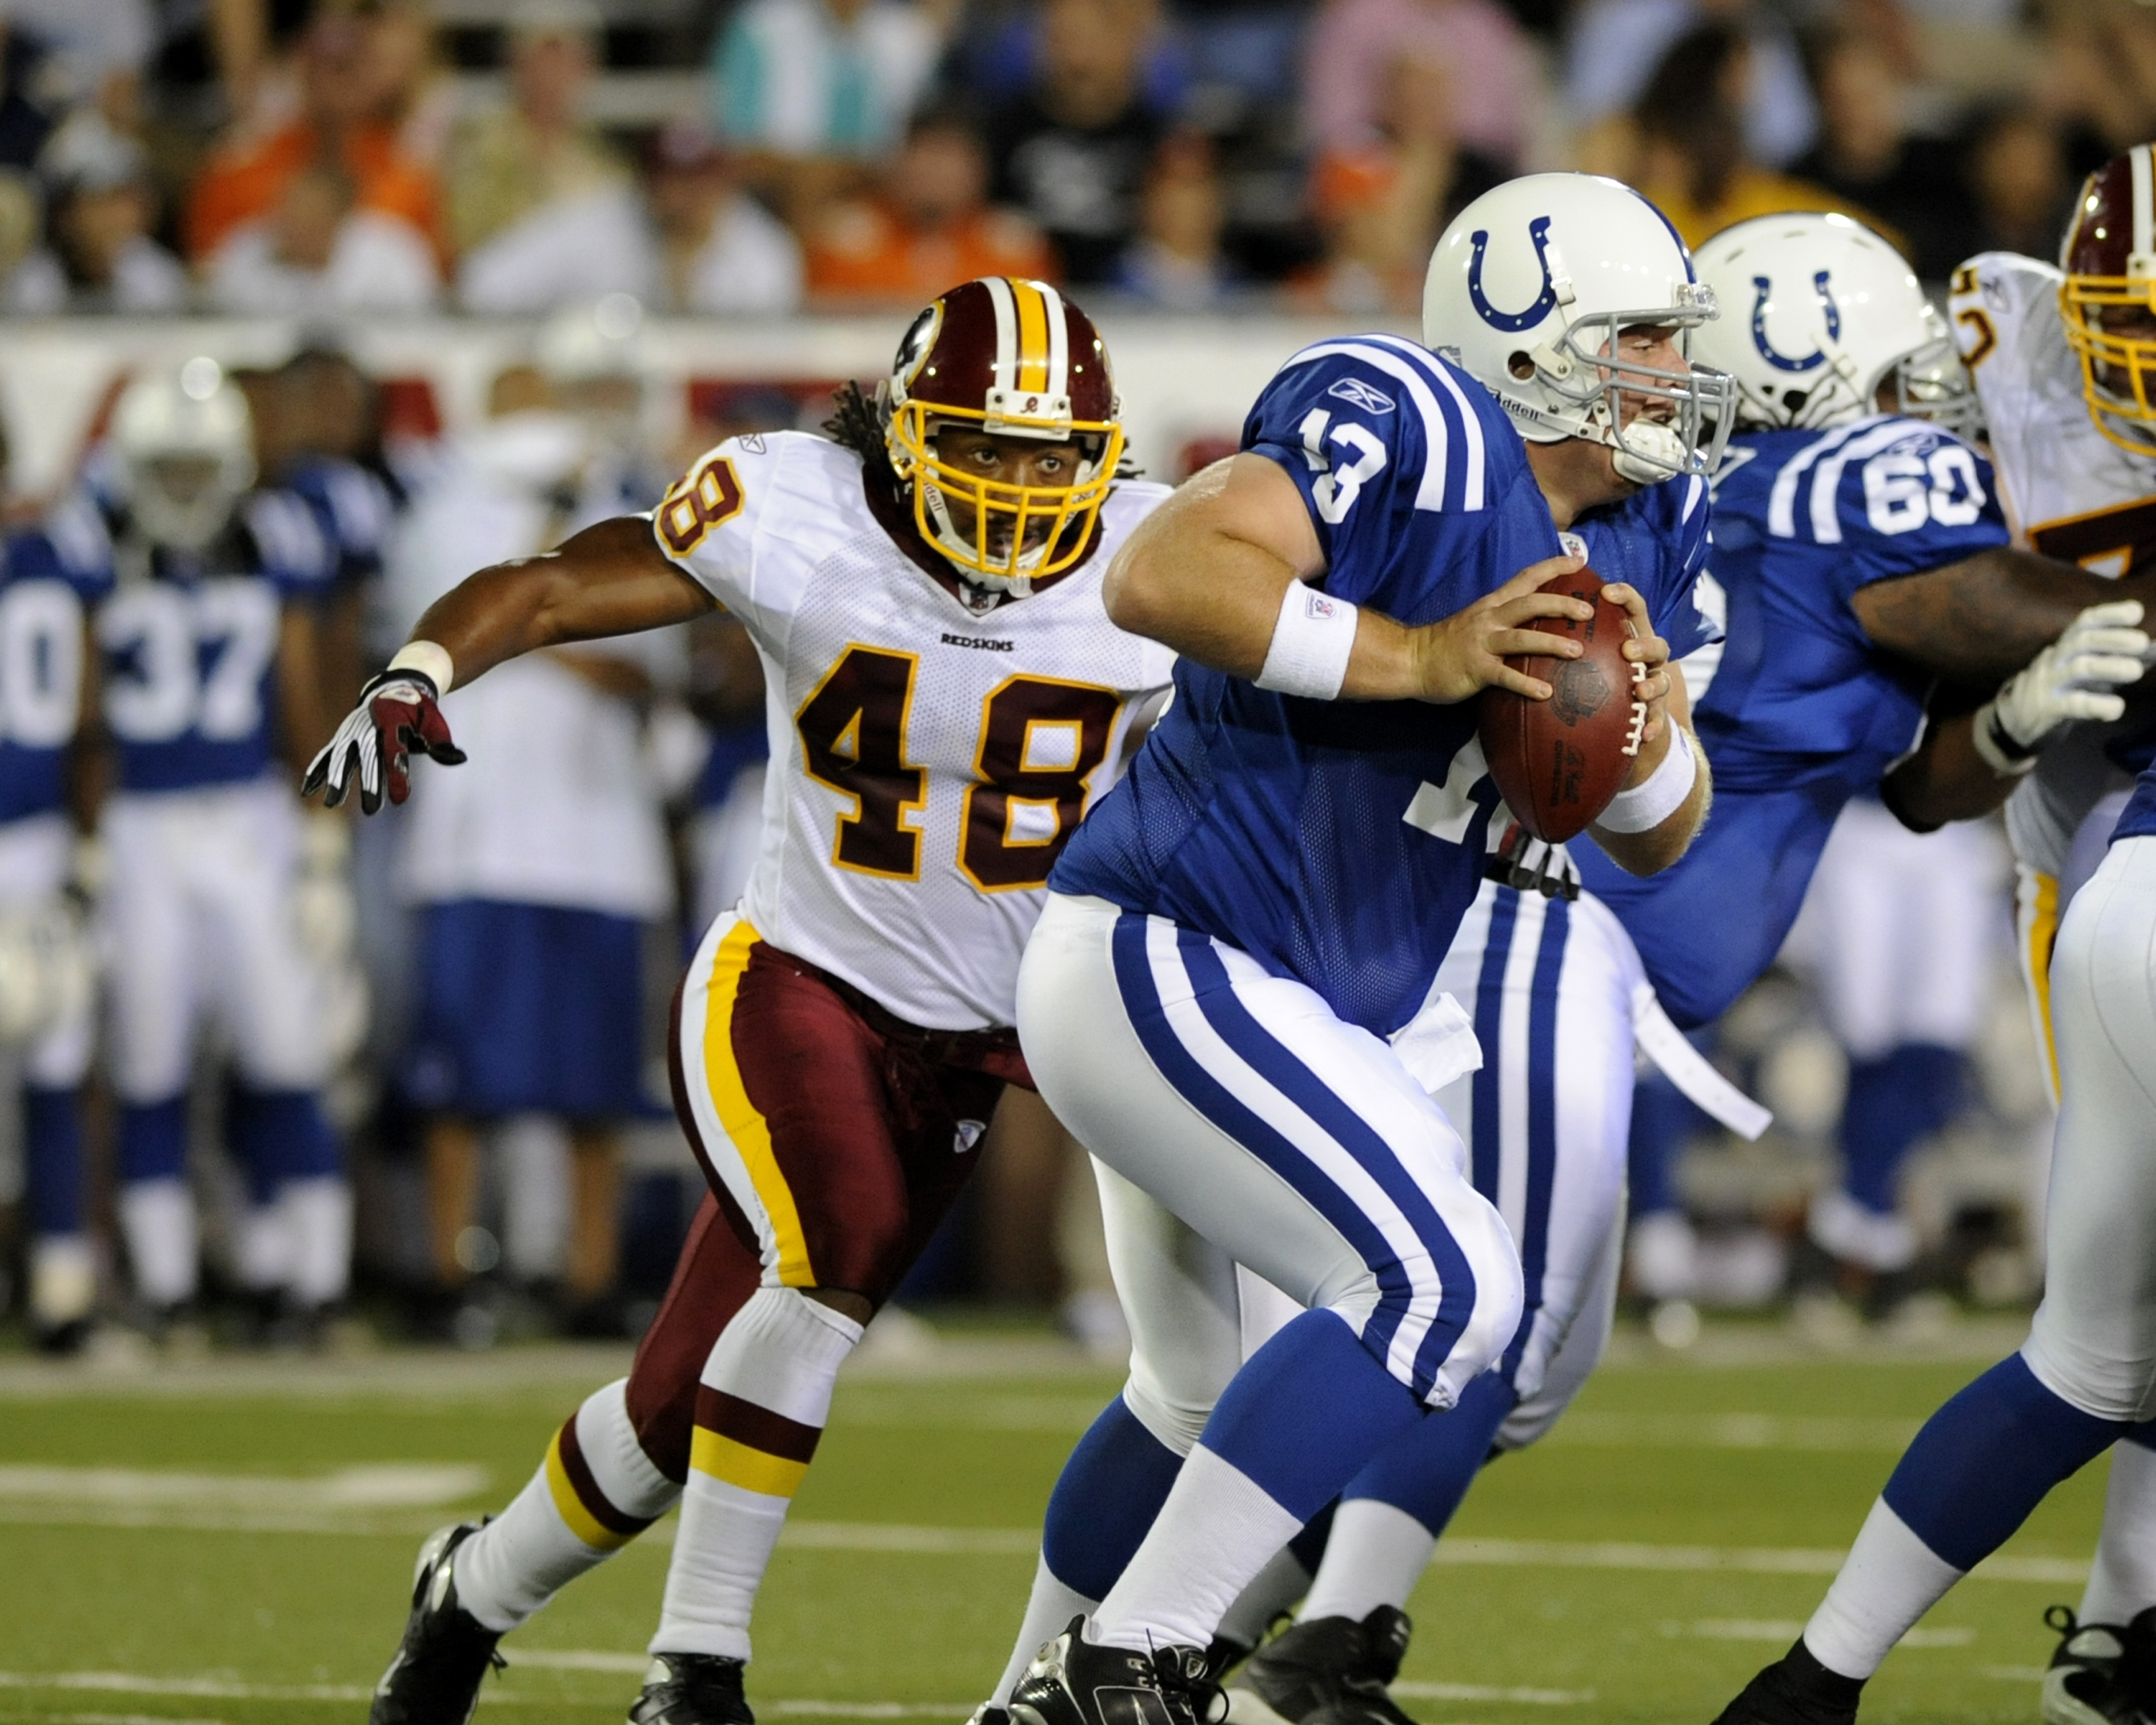 CANTON, OH - AUGUST 3:  Safety Chris Horton #48 of the Washington Redskins looks for a sack against the Indianapolis Colts in the Pro Football Hall of Fame Game at Fawcett Stadium on August 3, 2008 in Canton, Ohio.   (Photo by Al Messerschmidt/Getty Image